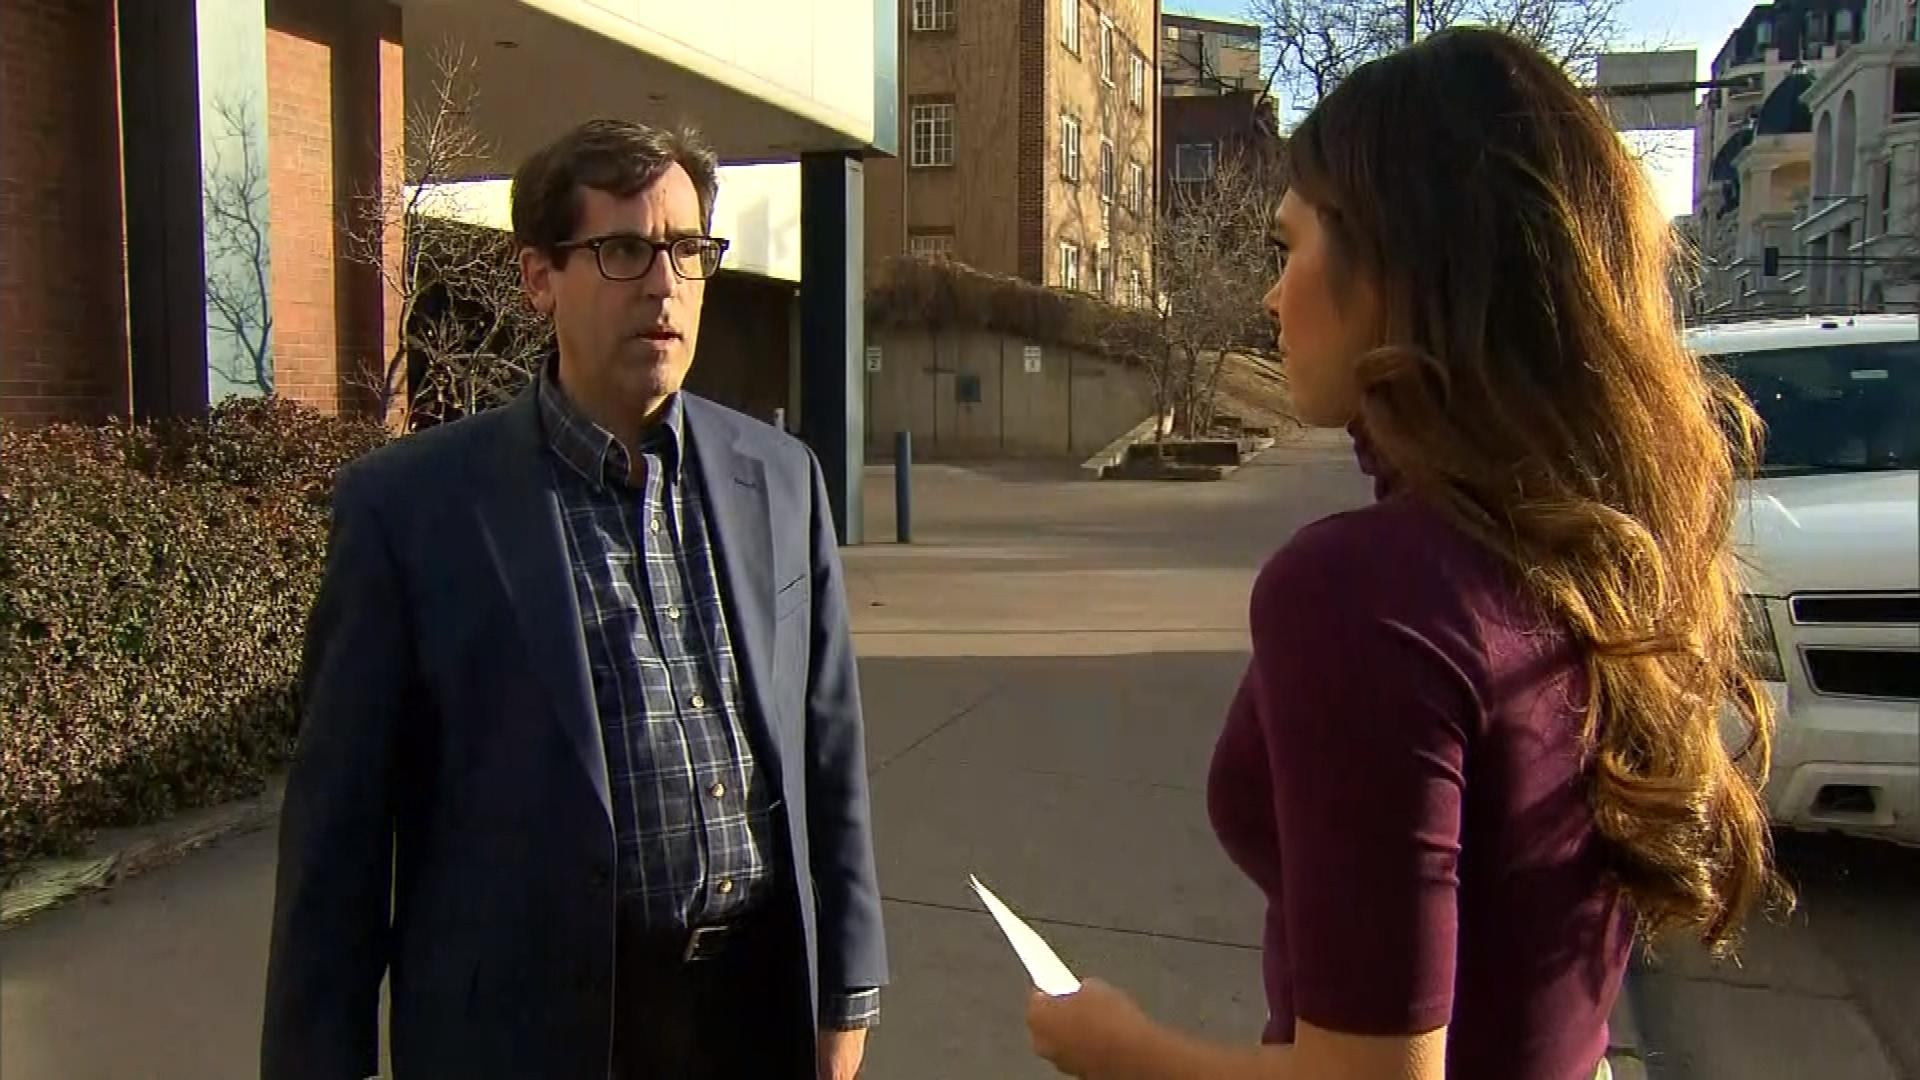 CBS4's Andrea Flores interviews Nathan Woodliff-Stanley. (credit: CBS)